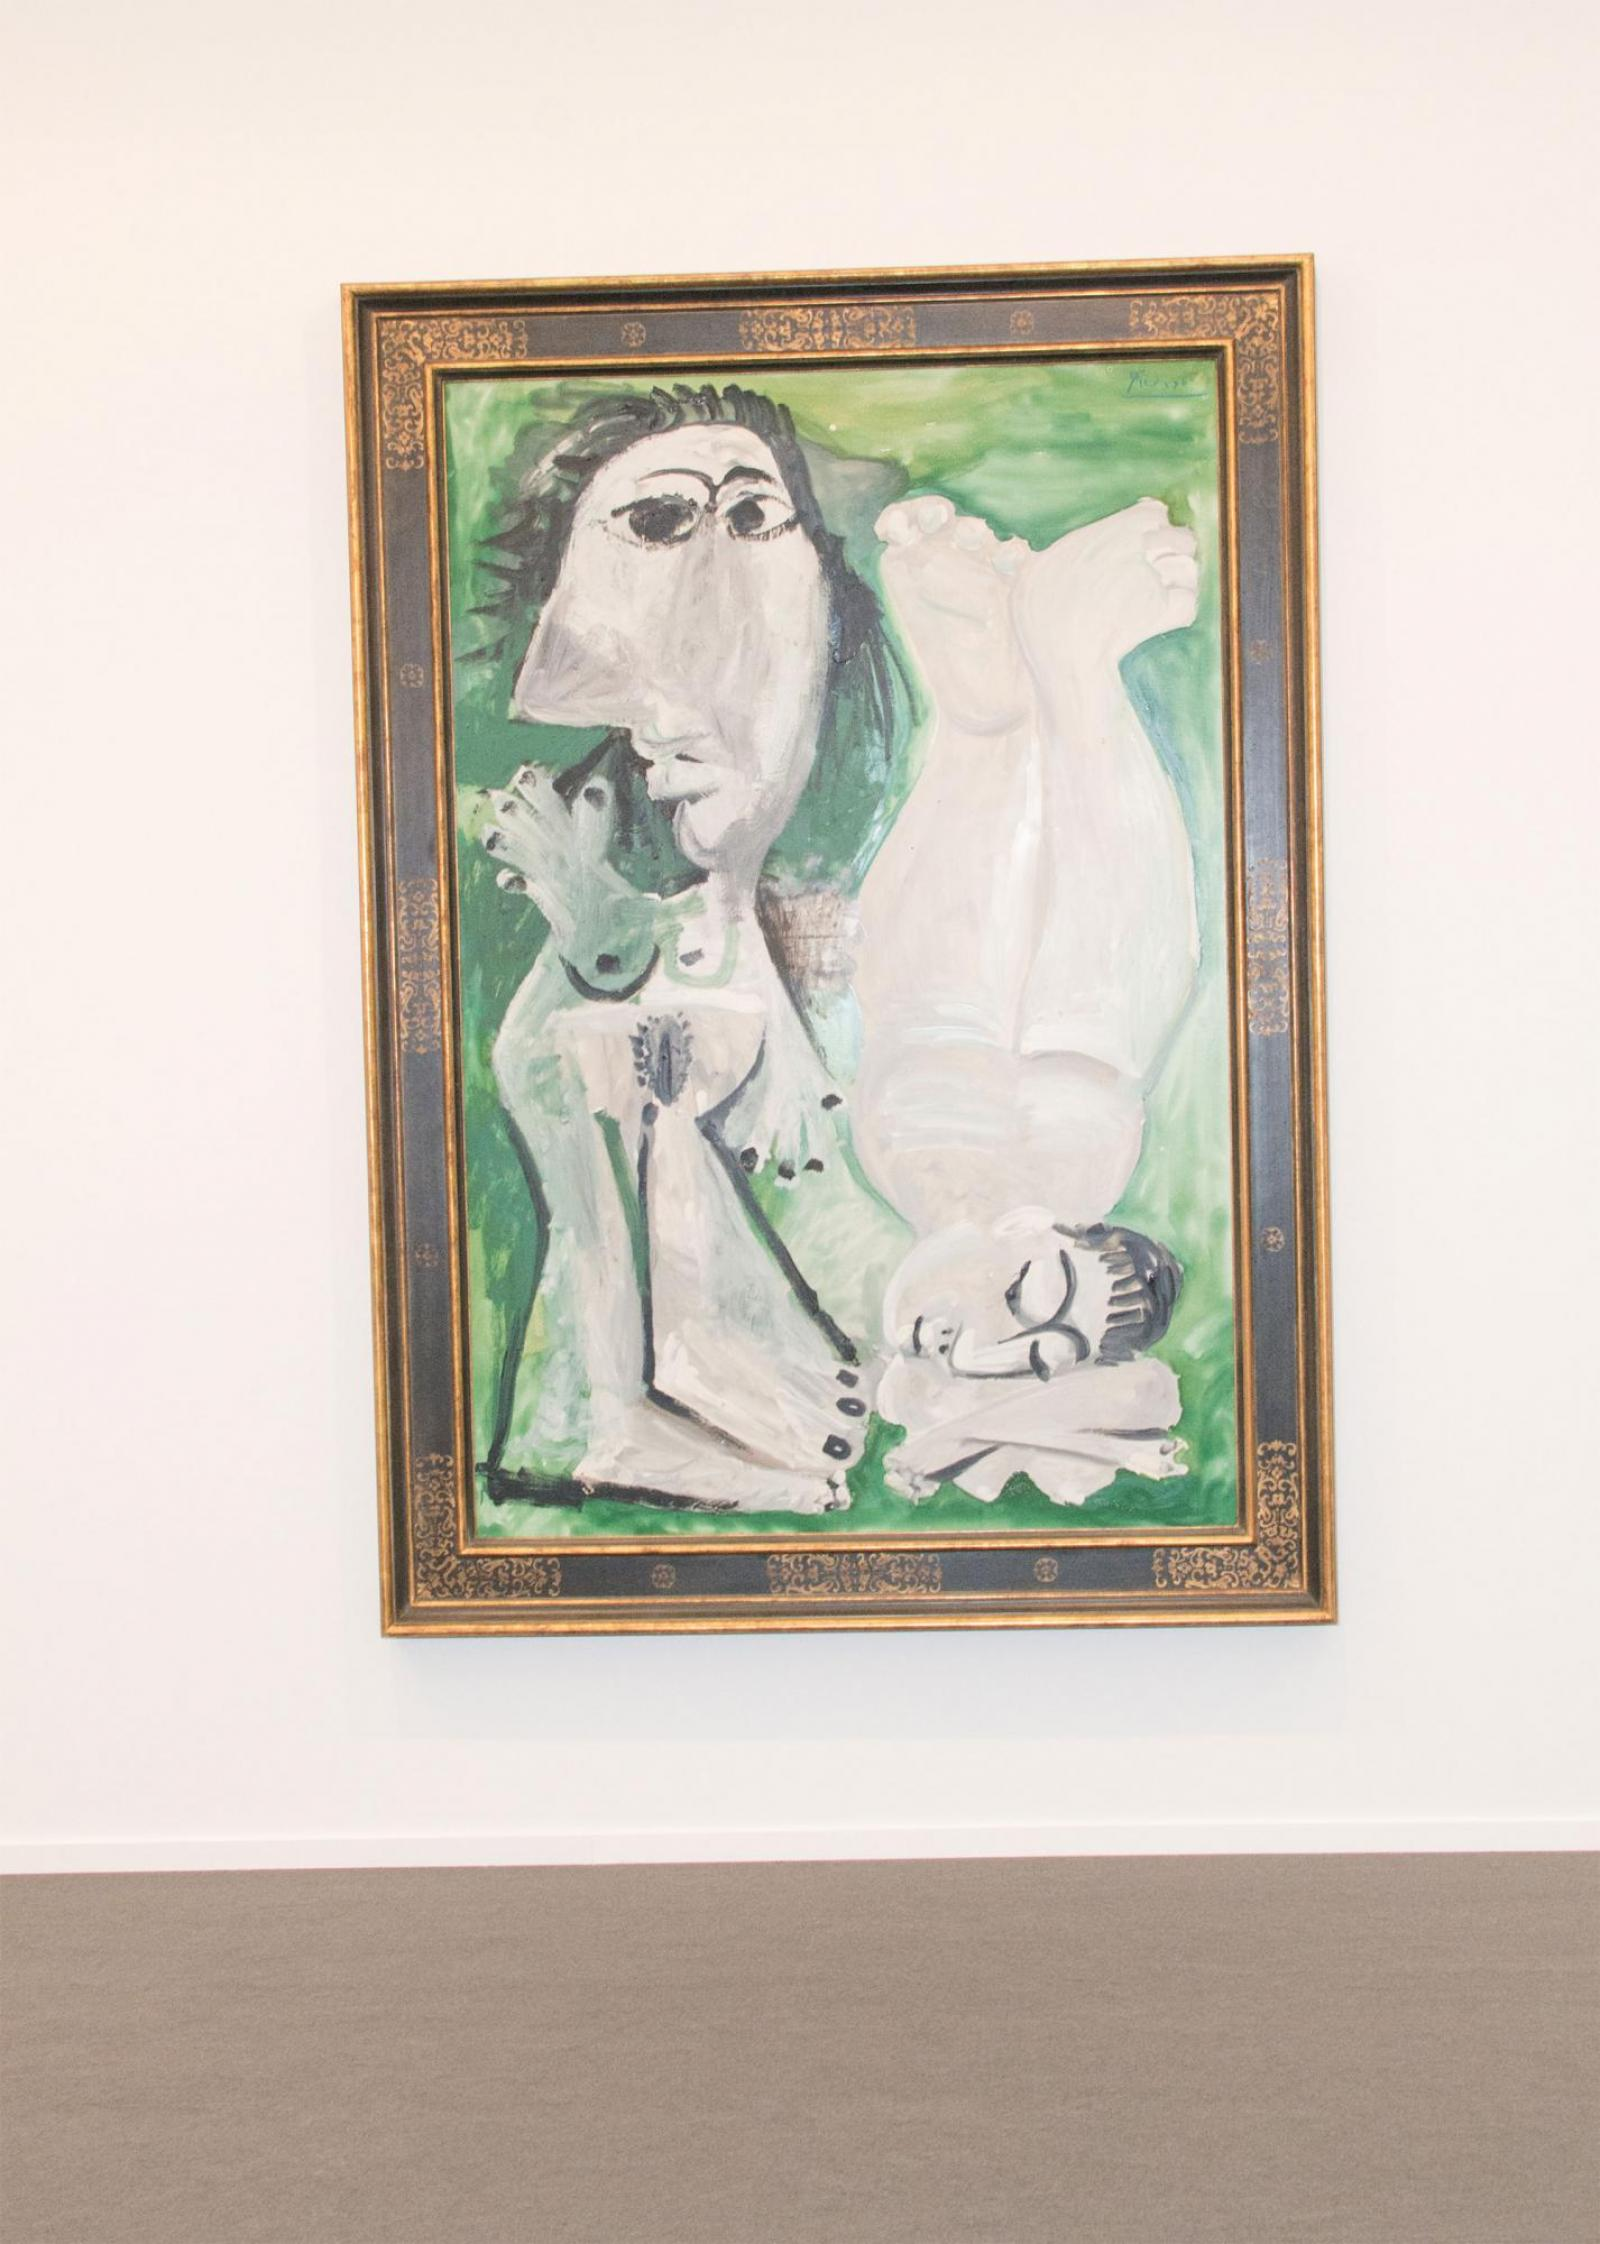 Pablo Picasso at Helly Nahmad